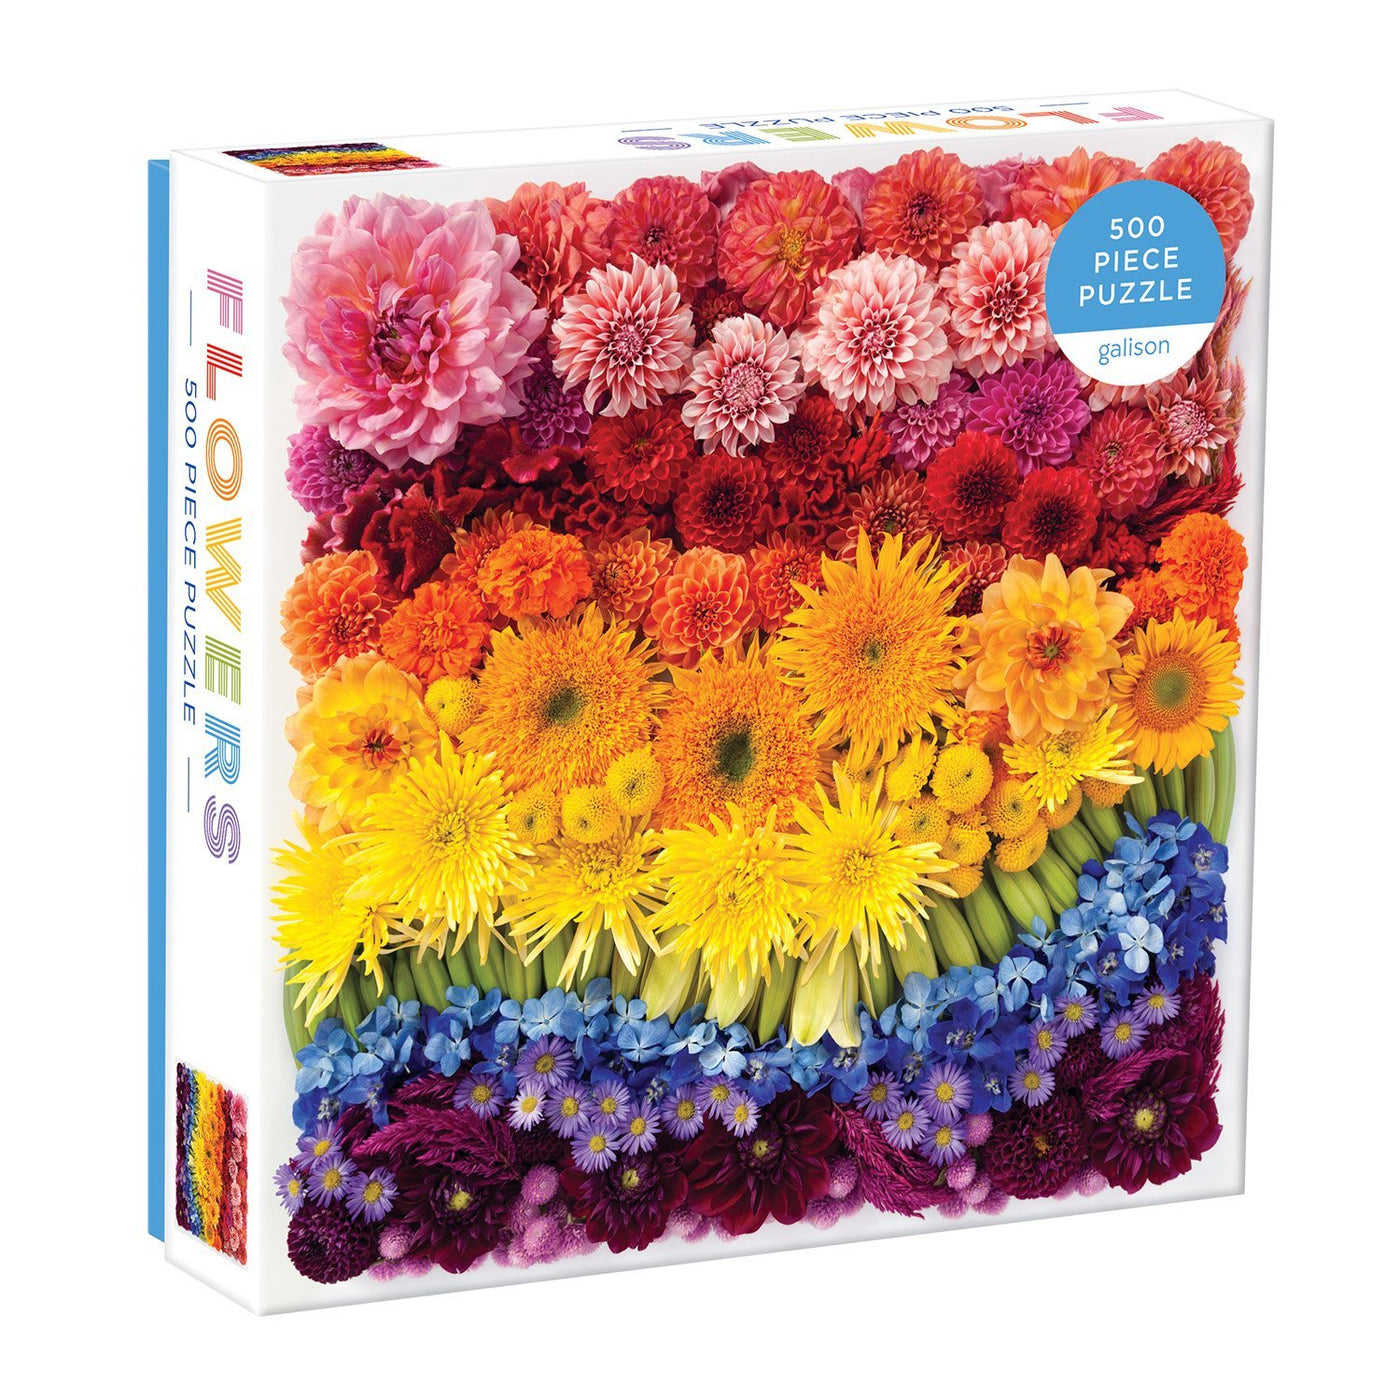 Galison Mudpuppy Rainbow Summer Flowers 500 Piece Puzzle Rose City Goods Julie Seabrook Hey Jules Studio Colourful Puzzle Things To Do in Lockdown Things To Do in Quarantine Lockdown Activity Quarantine Activity